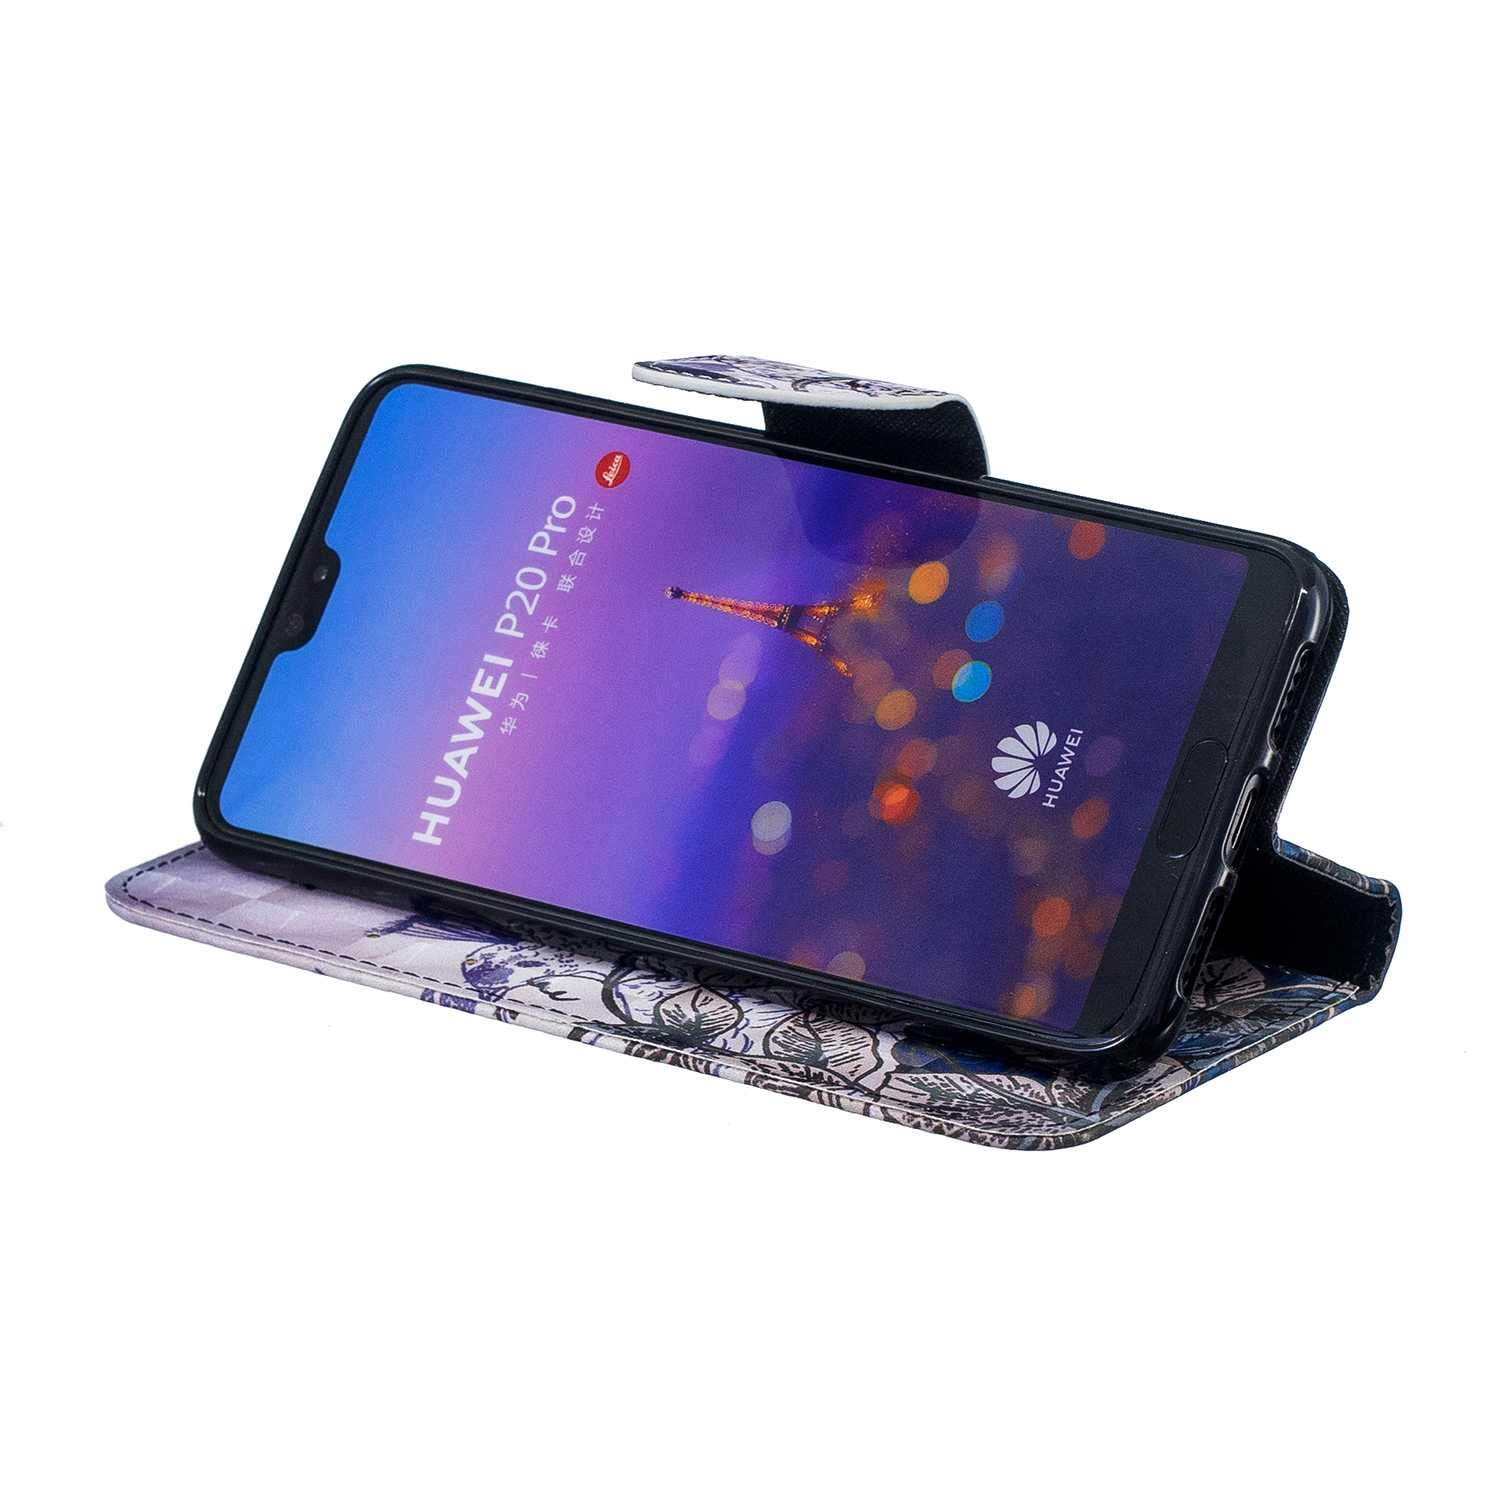 CUSKING Huawei P20 Pro Case, Premium 3D Design Wallet Case Stand Flip Case with Card Holders and Magnetic Closure, Multi-Functional Shockproof Case for Huawei P20 Pro - Peacock by CUSKING (Image #5)